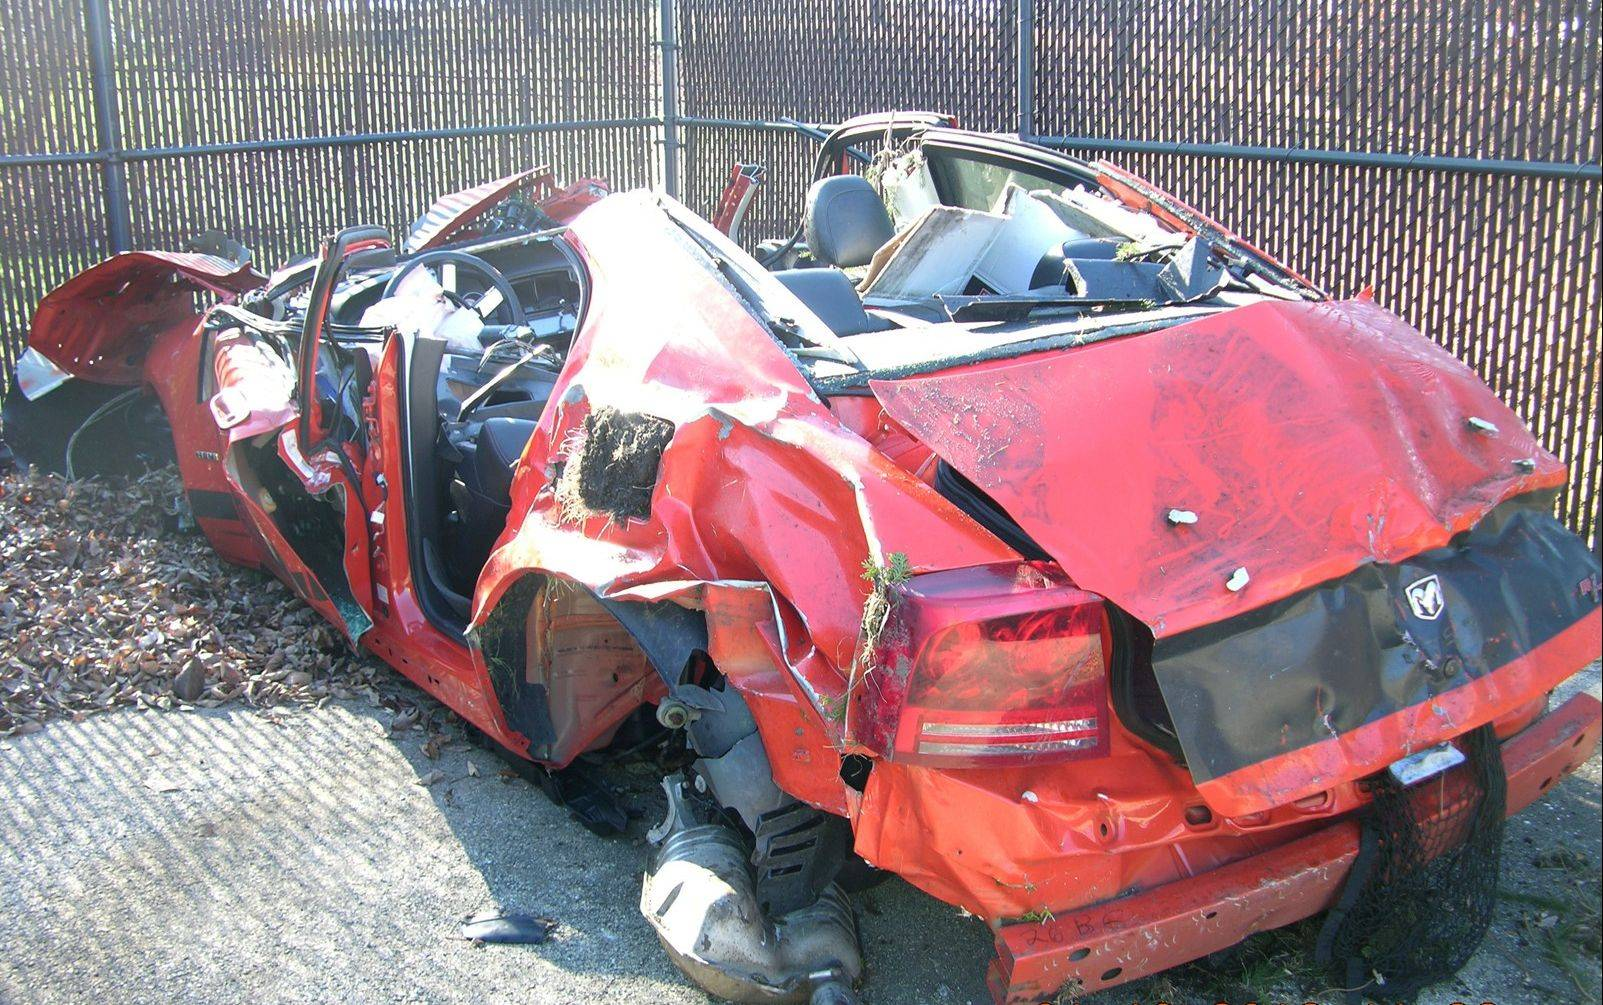 Dean Suominen�s 2008 Dodge Charger was totaled in a January 2012 crash in which police say he was driving 142 mph on Ogden Avenue in Naperville. He pleaded guilty Tuesday to DUI and reckless driving.